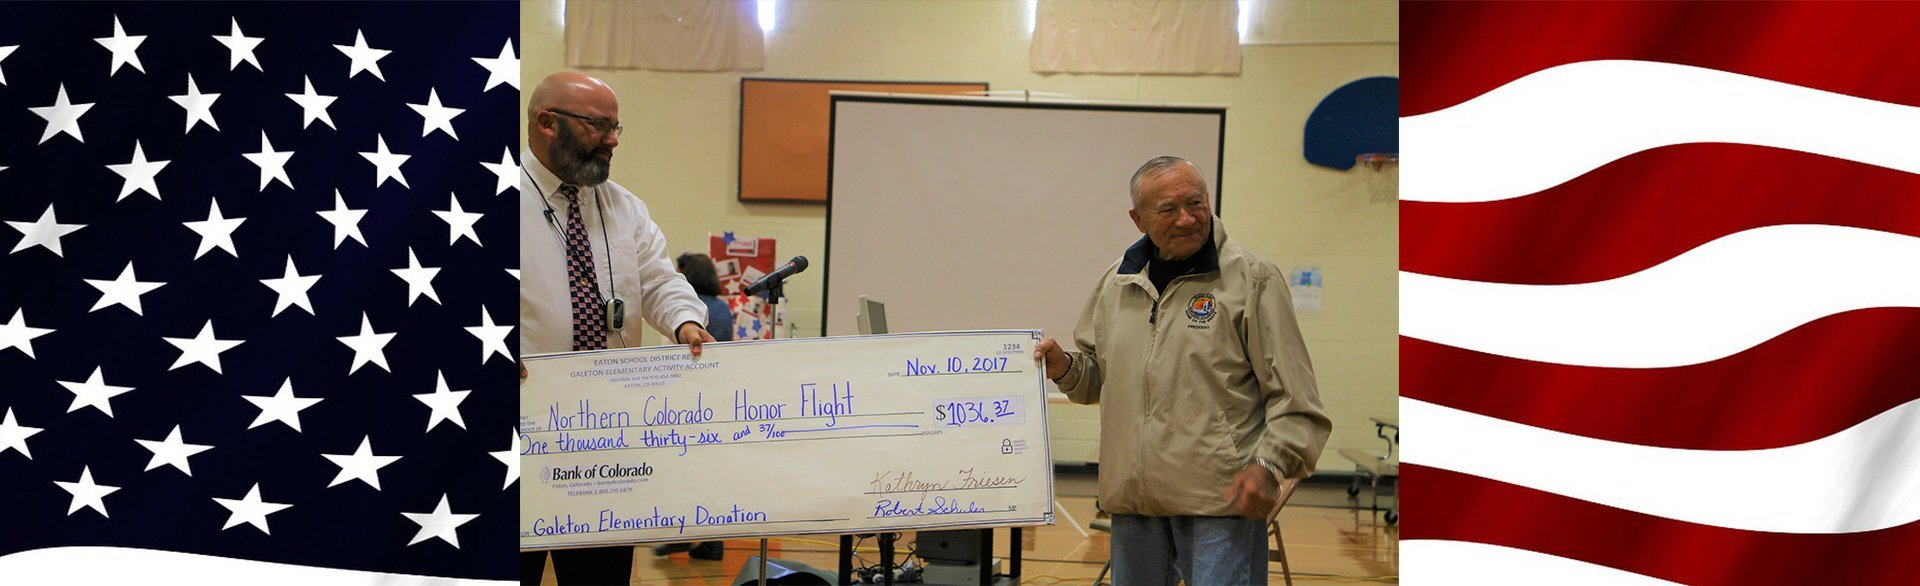 Northen Colorado Honor Flight Donation